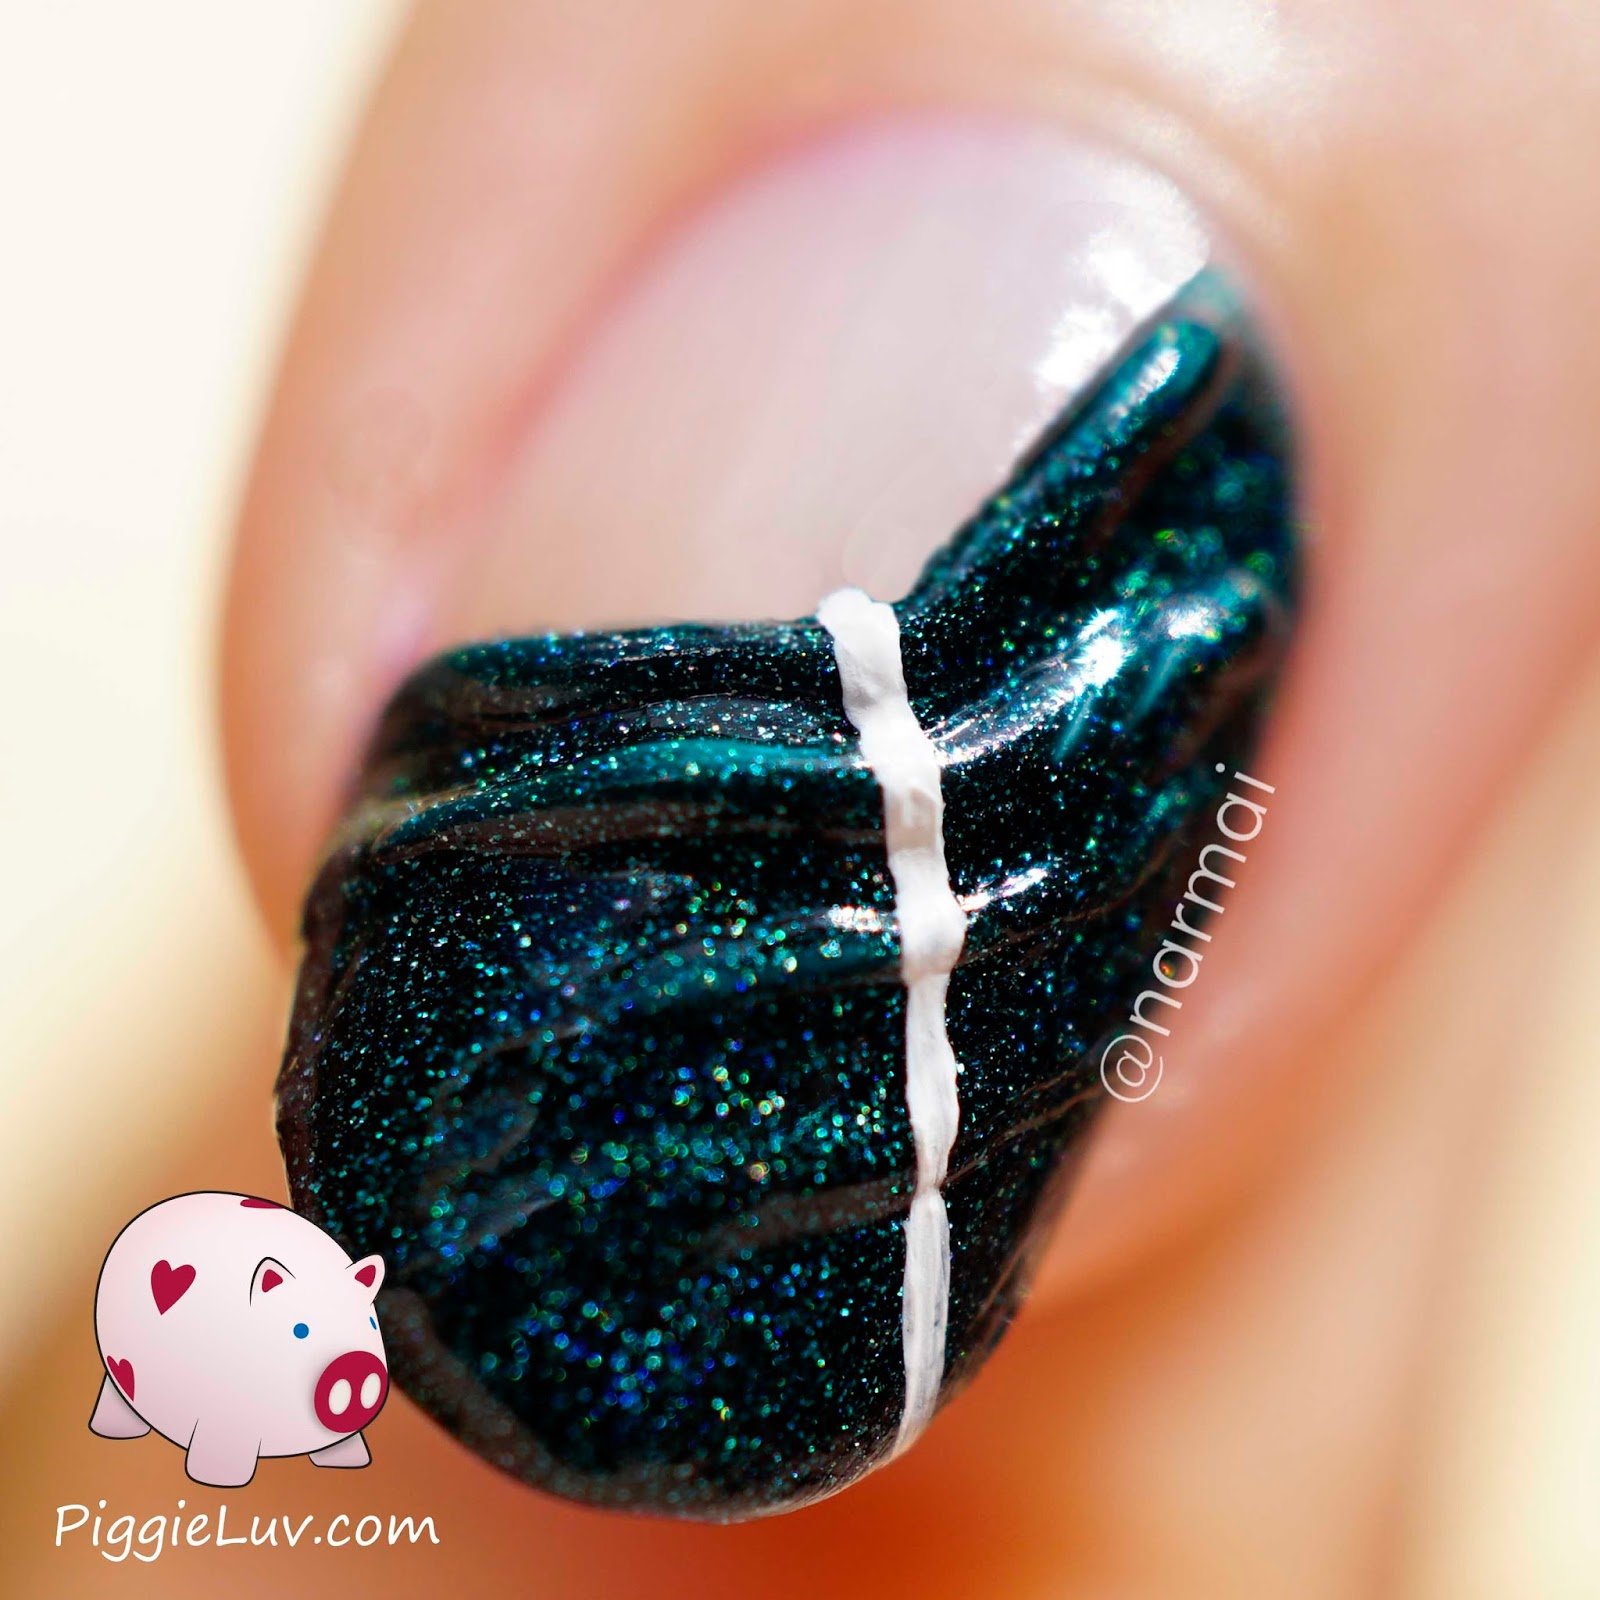 Piggieluv 3d Pull The Curtain Nail Art